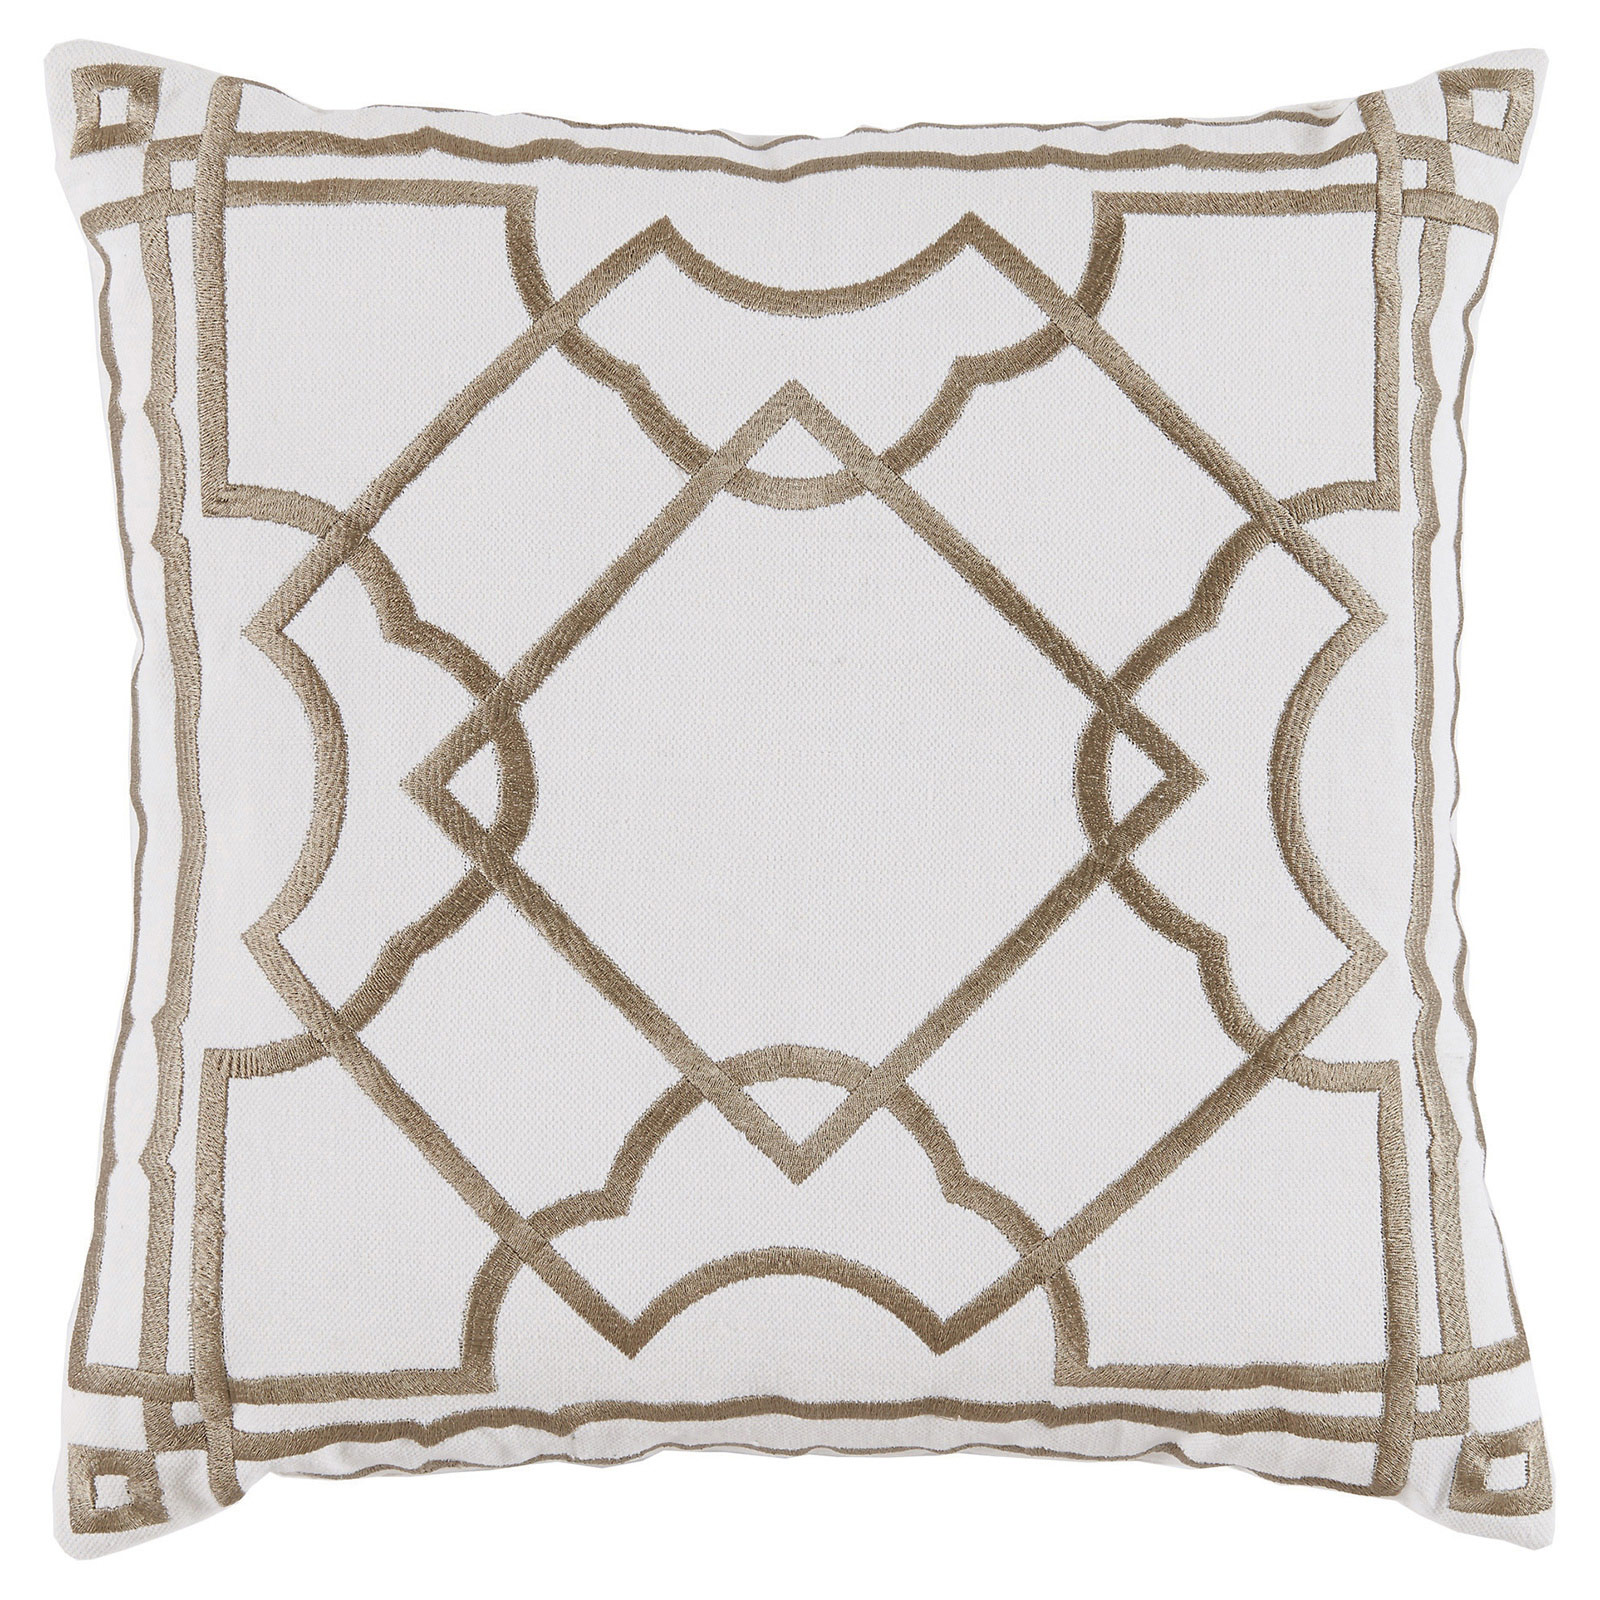 Cugat Modern Deco Beige Embroidered White Pillow - 20x20